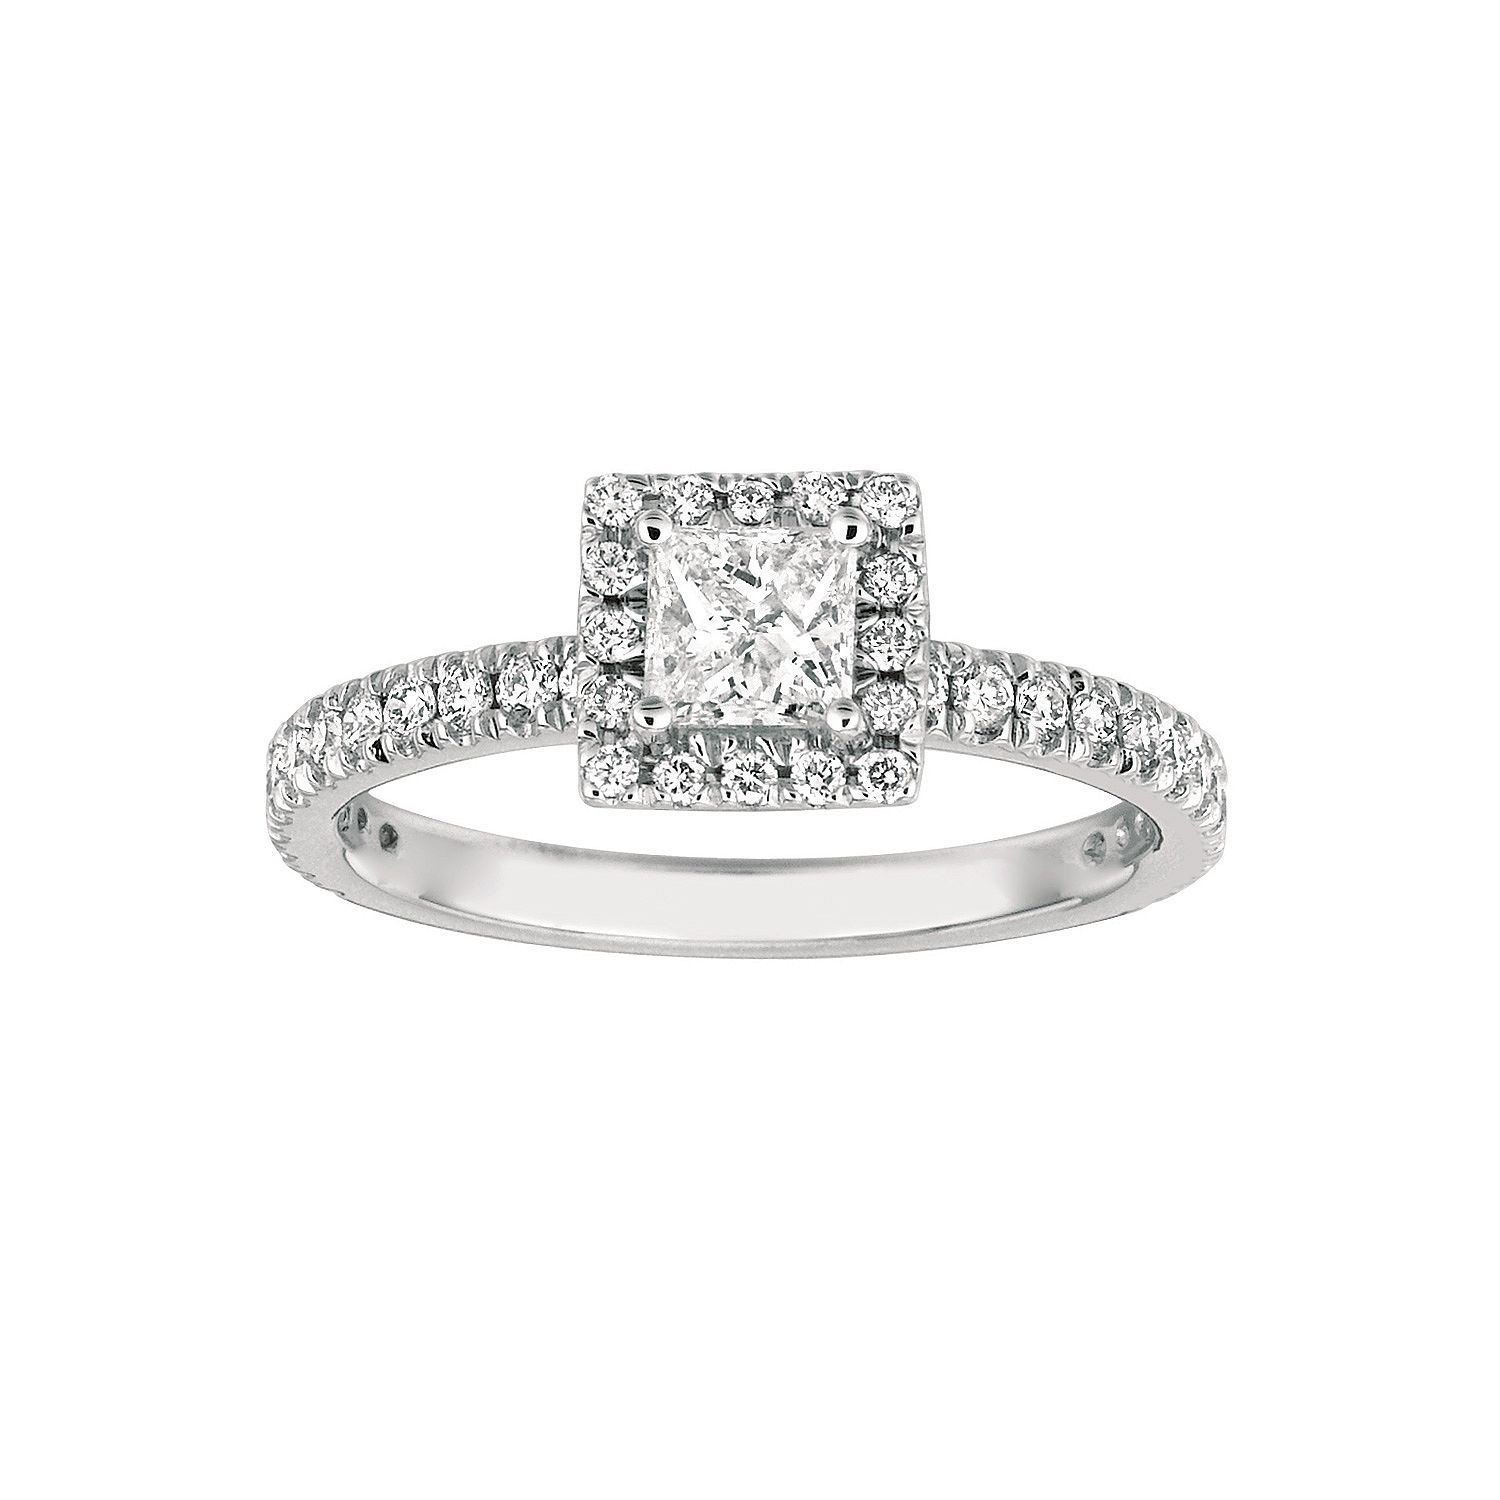 14k White Gold FN 925 Silver Solitaire W/ Side Accents Ring With Sim Diamond